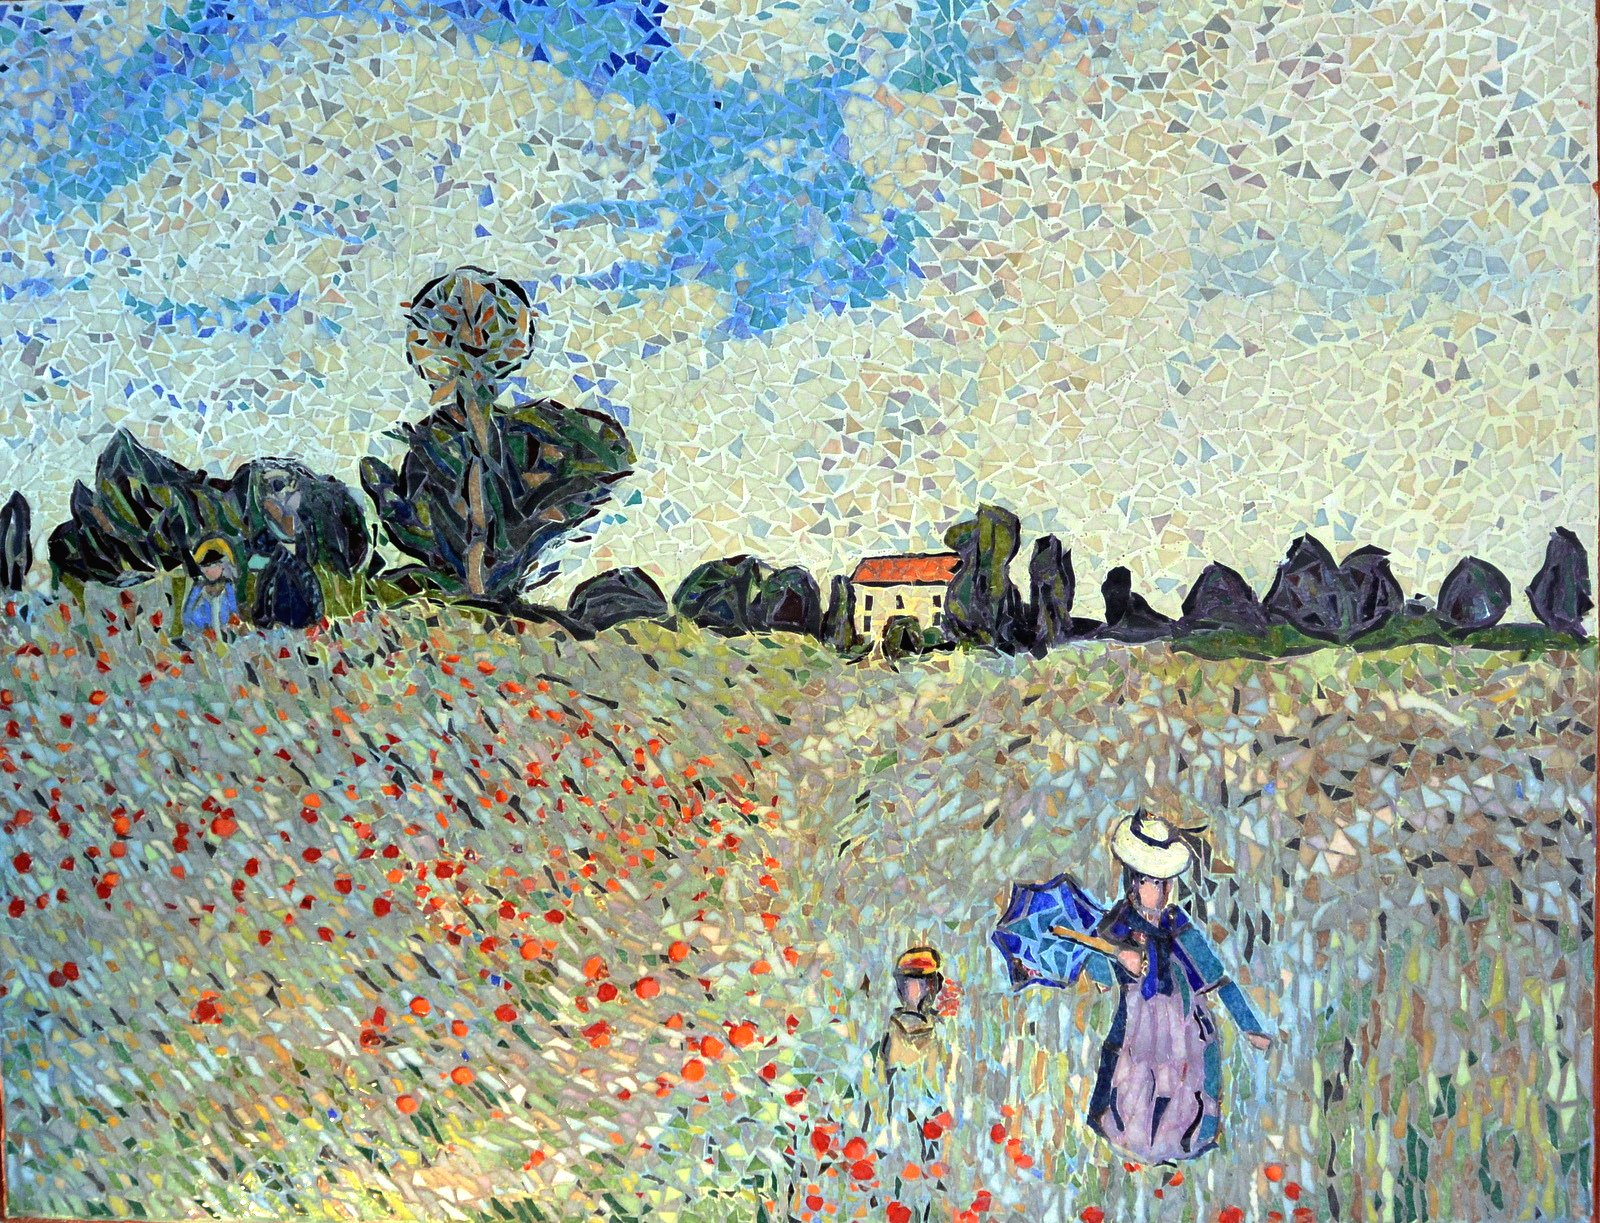 Le champ de coquelicots.Influence,Claude Monet. | BRIARE mosaïques ...